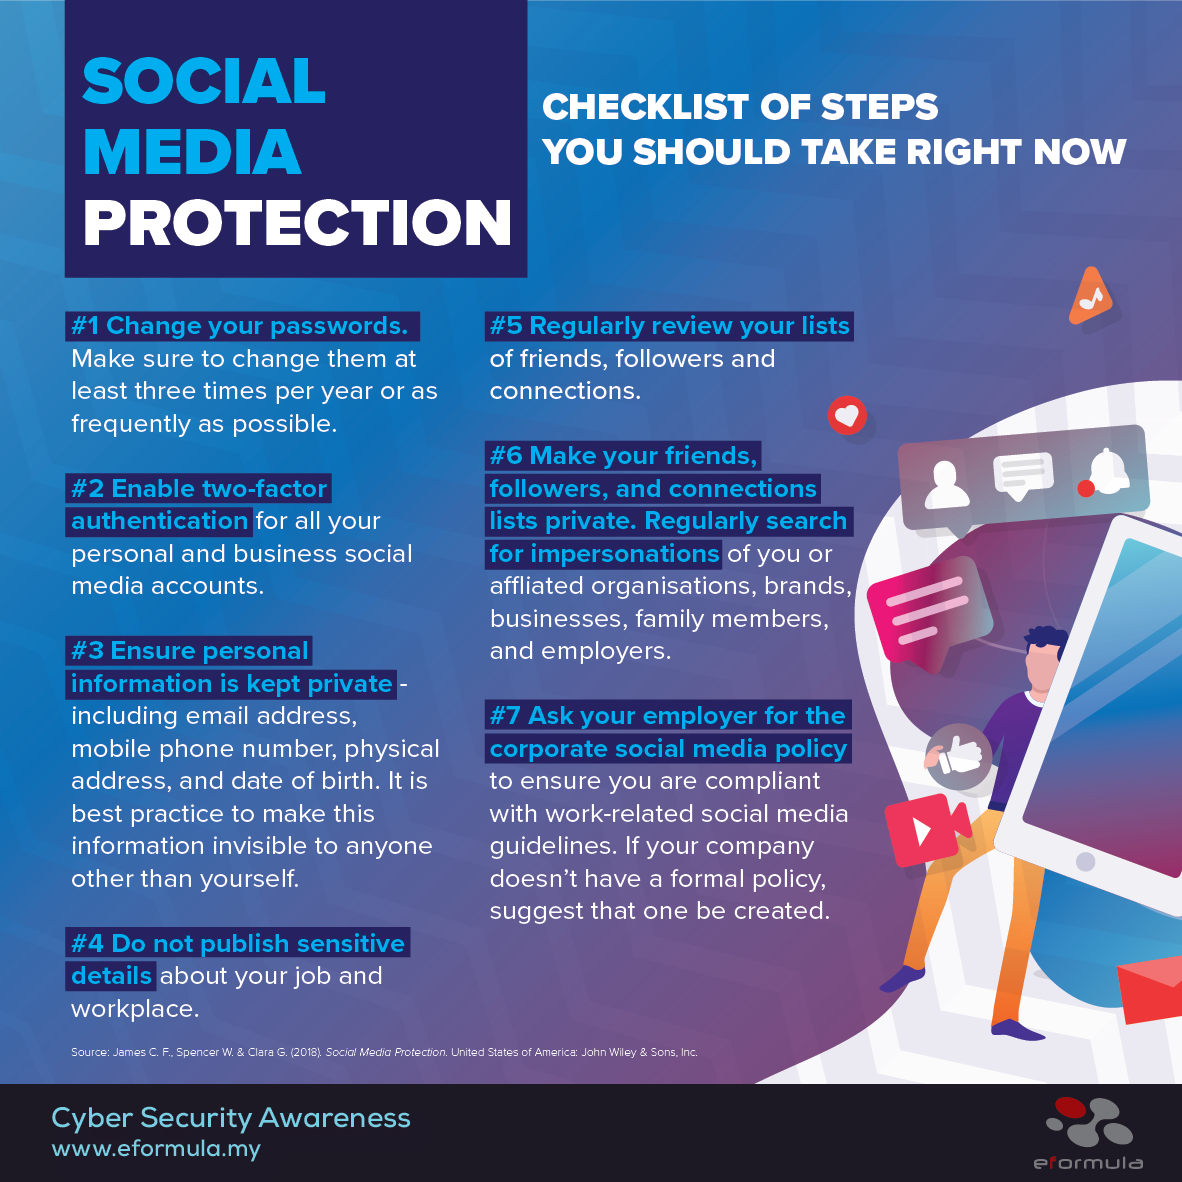 social media protection: Checklist of steps you should take right now